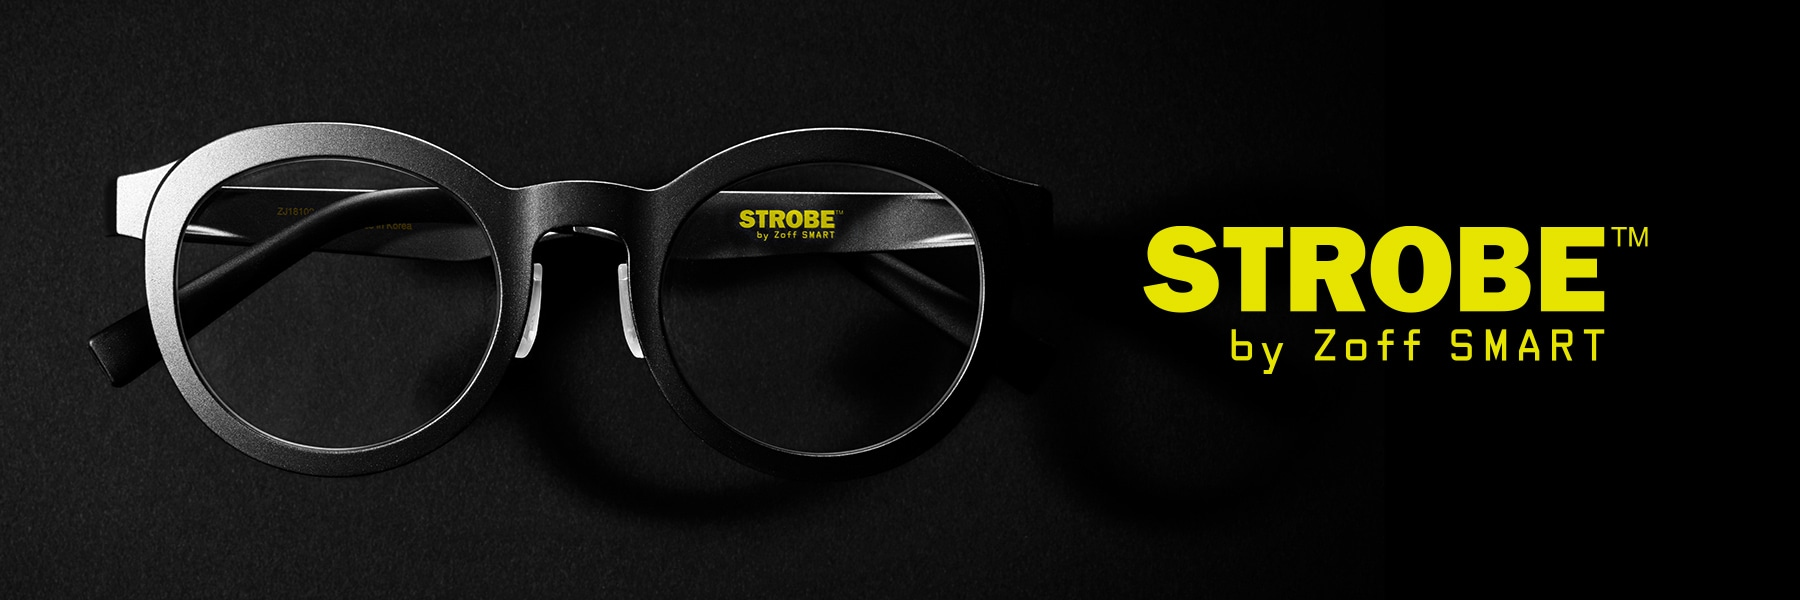 STROBE(TM) by Zoff SMART 8.3 DEBUT!